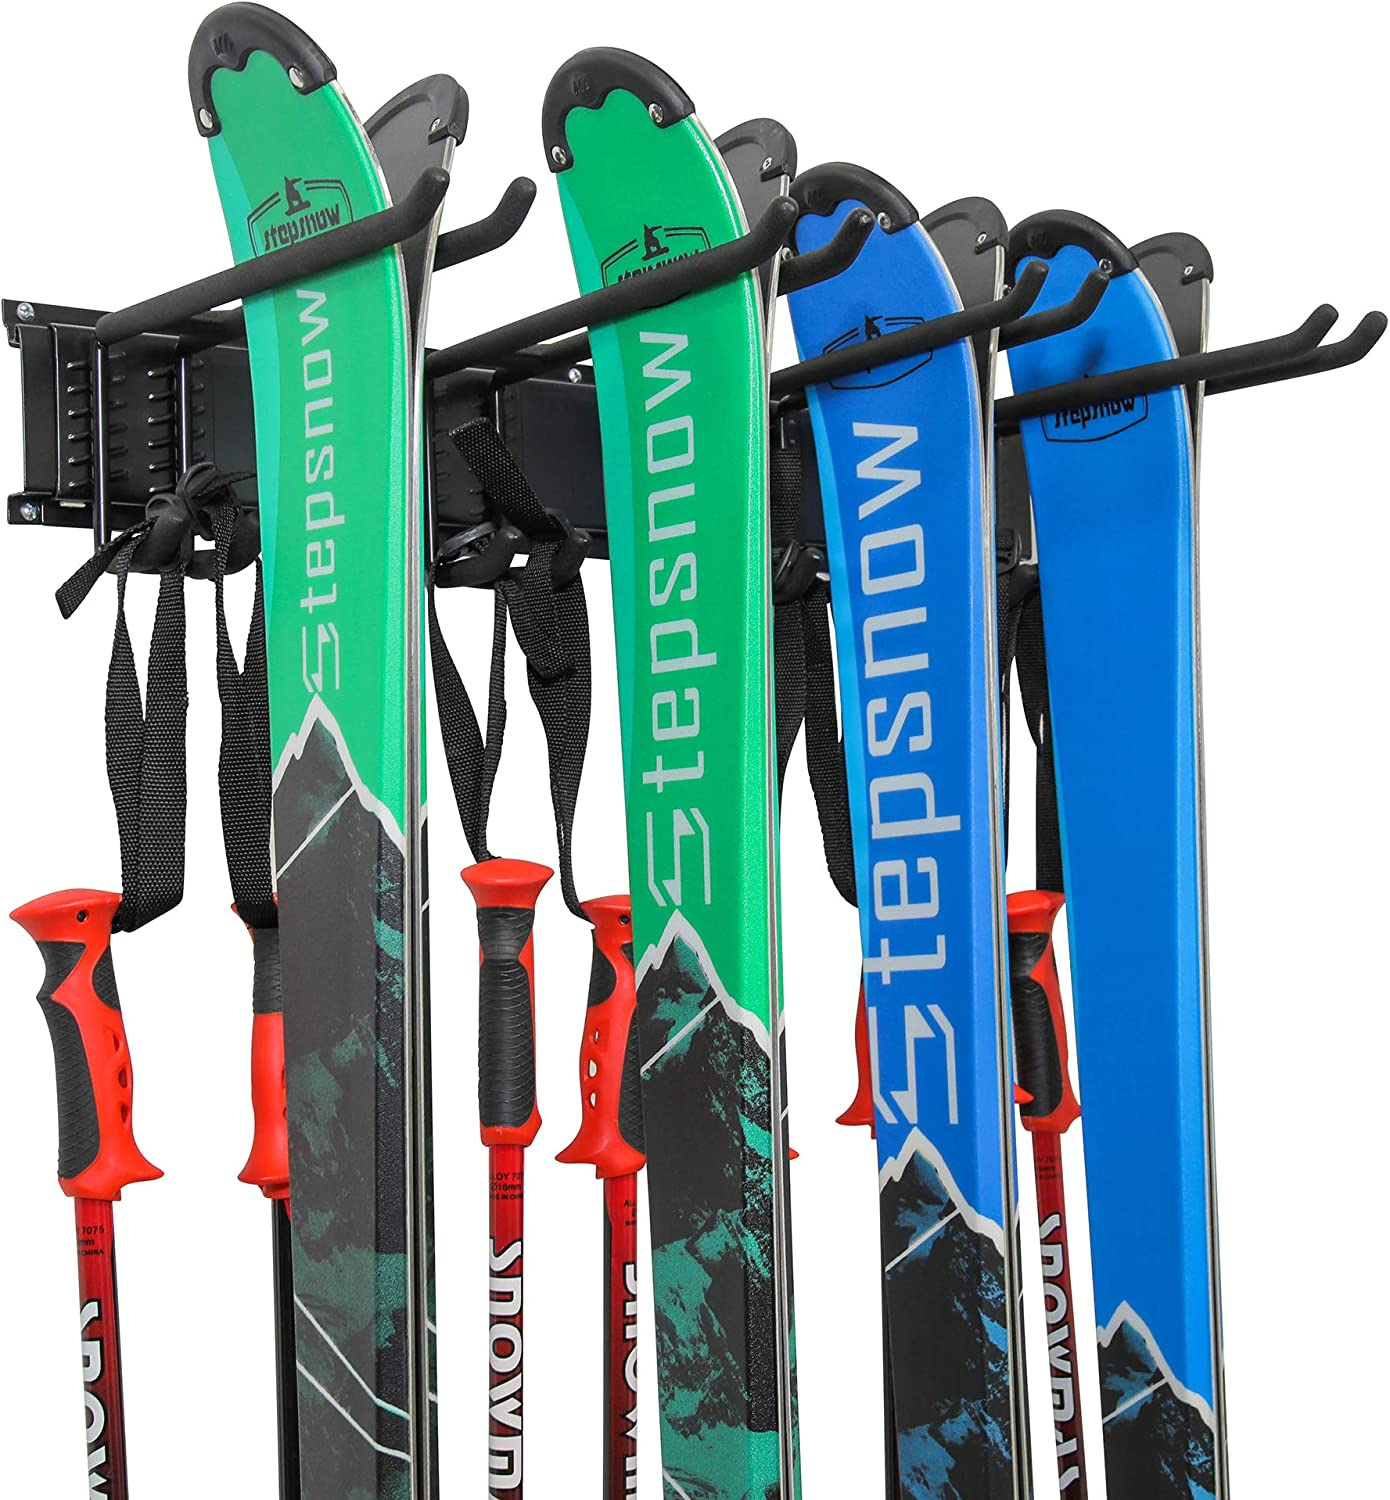 Ski Wall Rack, Holds 4 Pairs of Skis & Skiing Poles or Snowboard, for Home and Garage Storage, Wall Mounted, Heavy Duty, Adjustable Rubber-Coated Hooks